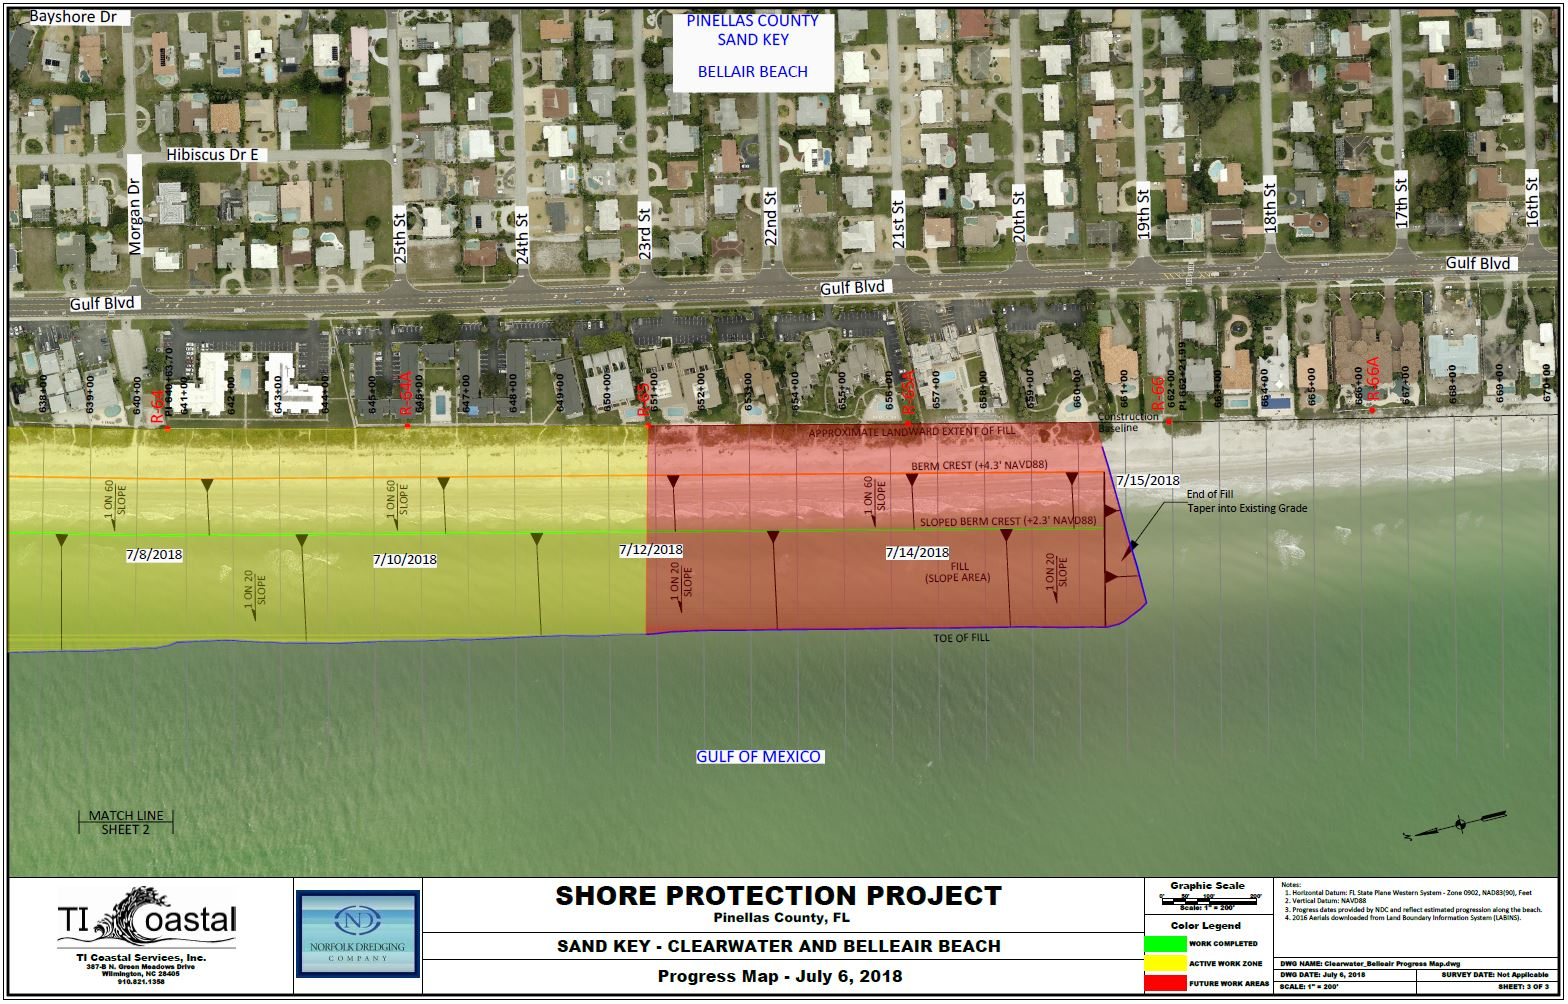 Pinellas County Shore Protection Progress Map July 6 2018 Section 3